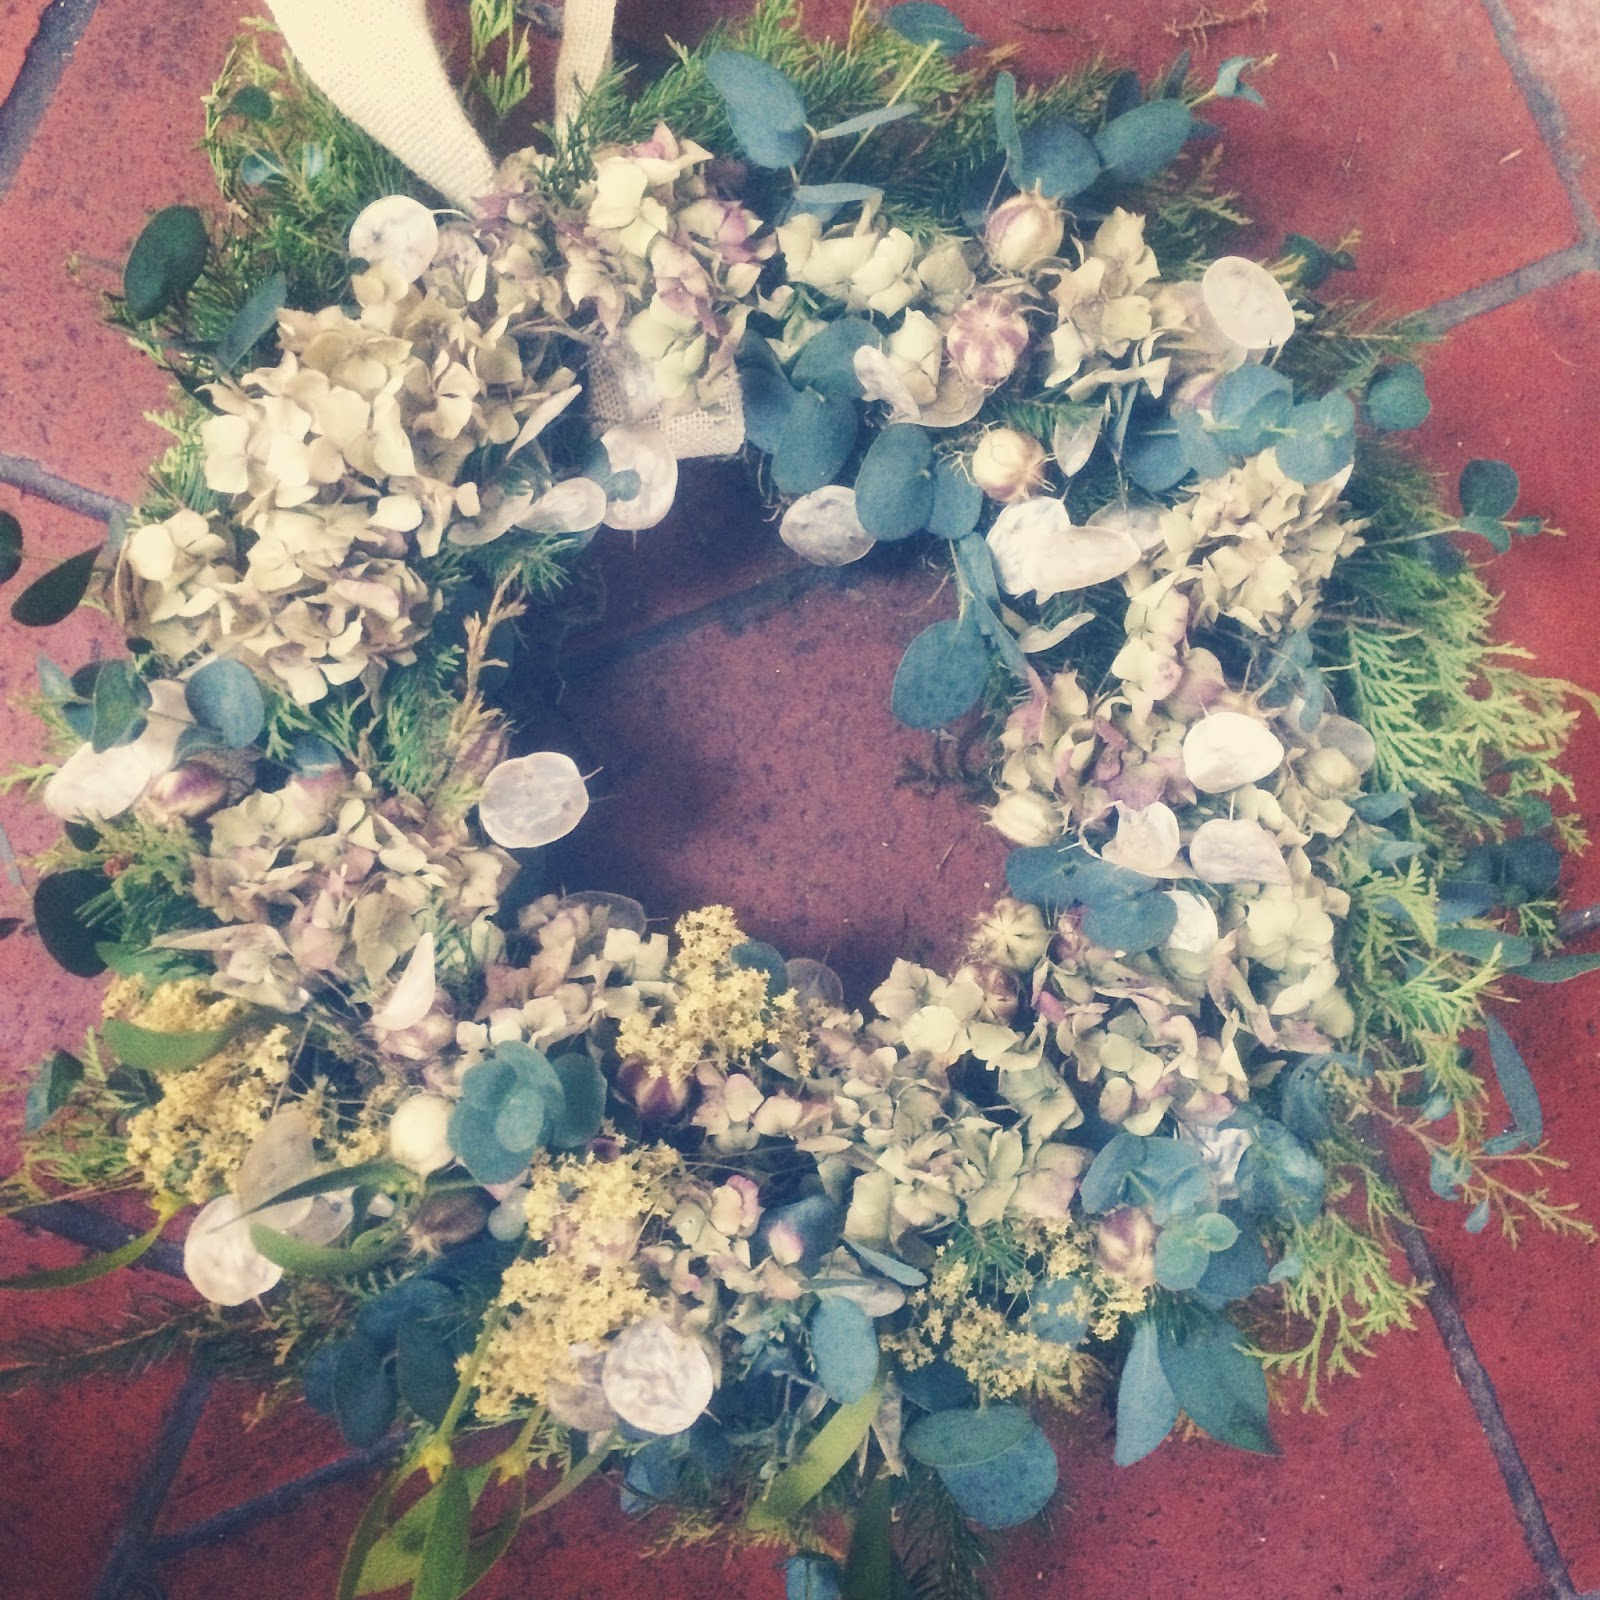 Fresh handmade wreath, Tuckshop Flowers, Birmingham